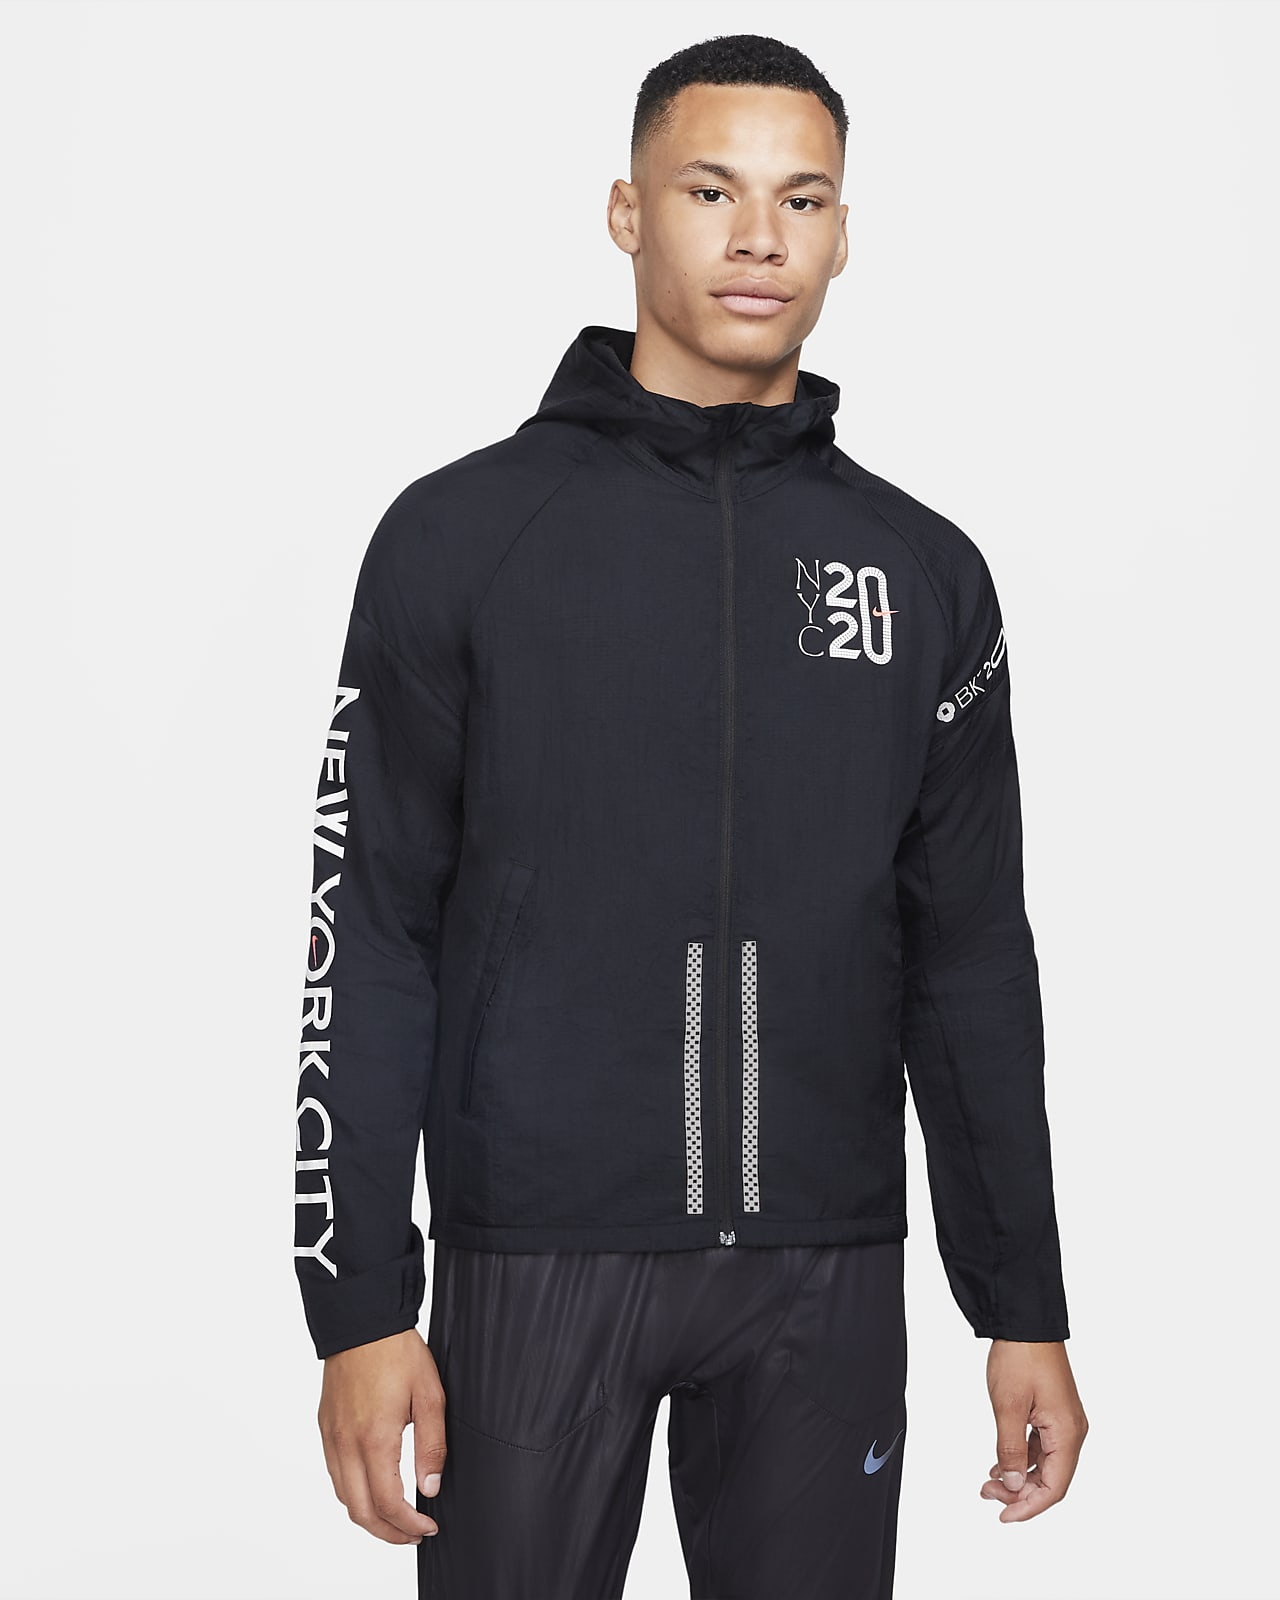 Nike Essential NYC Men's Running Jacket